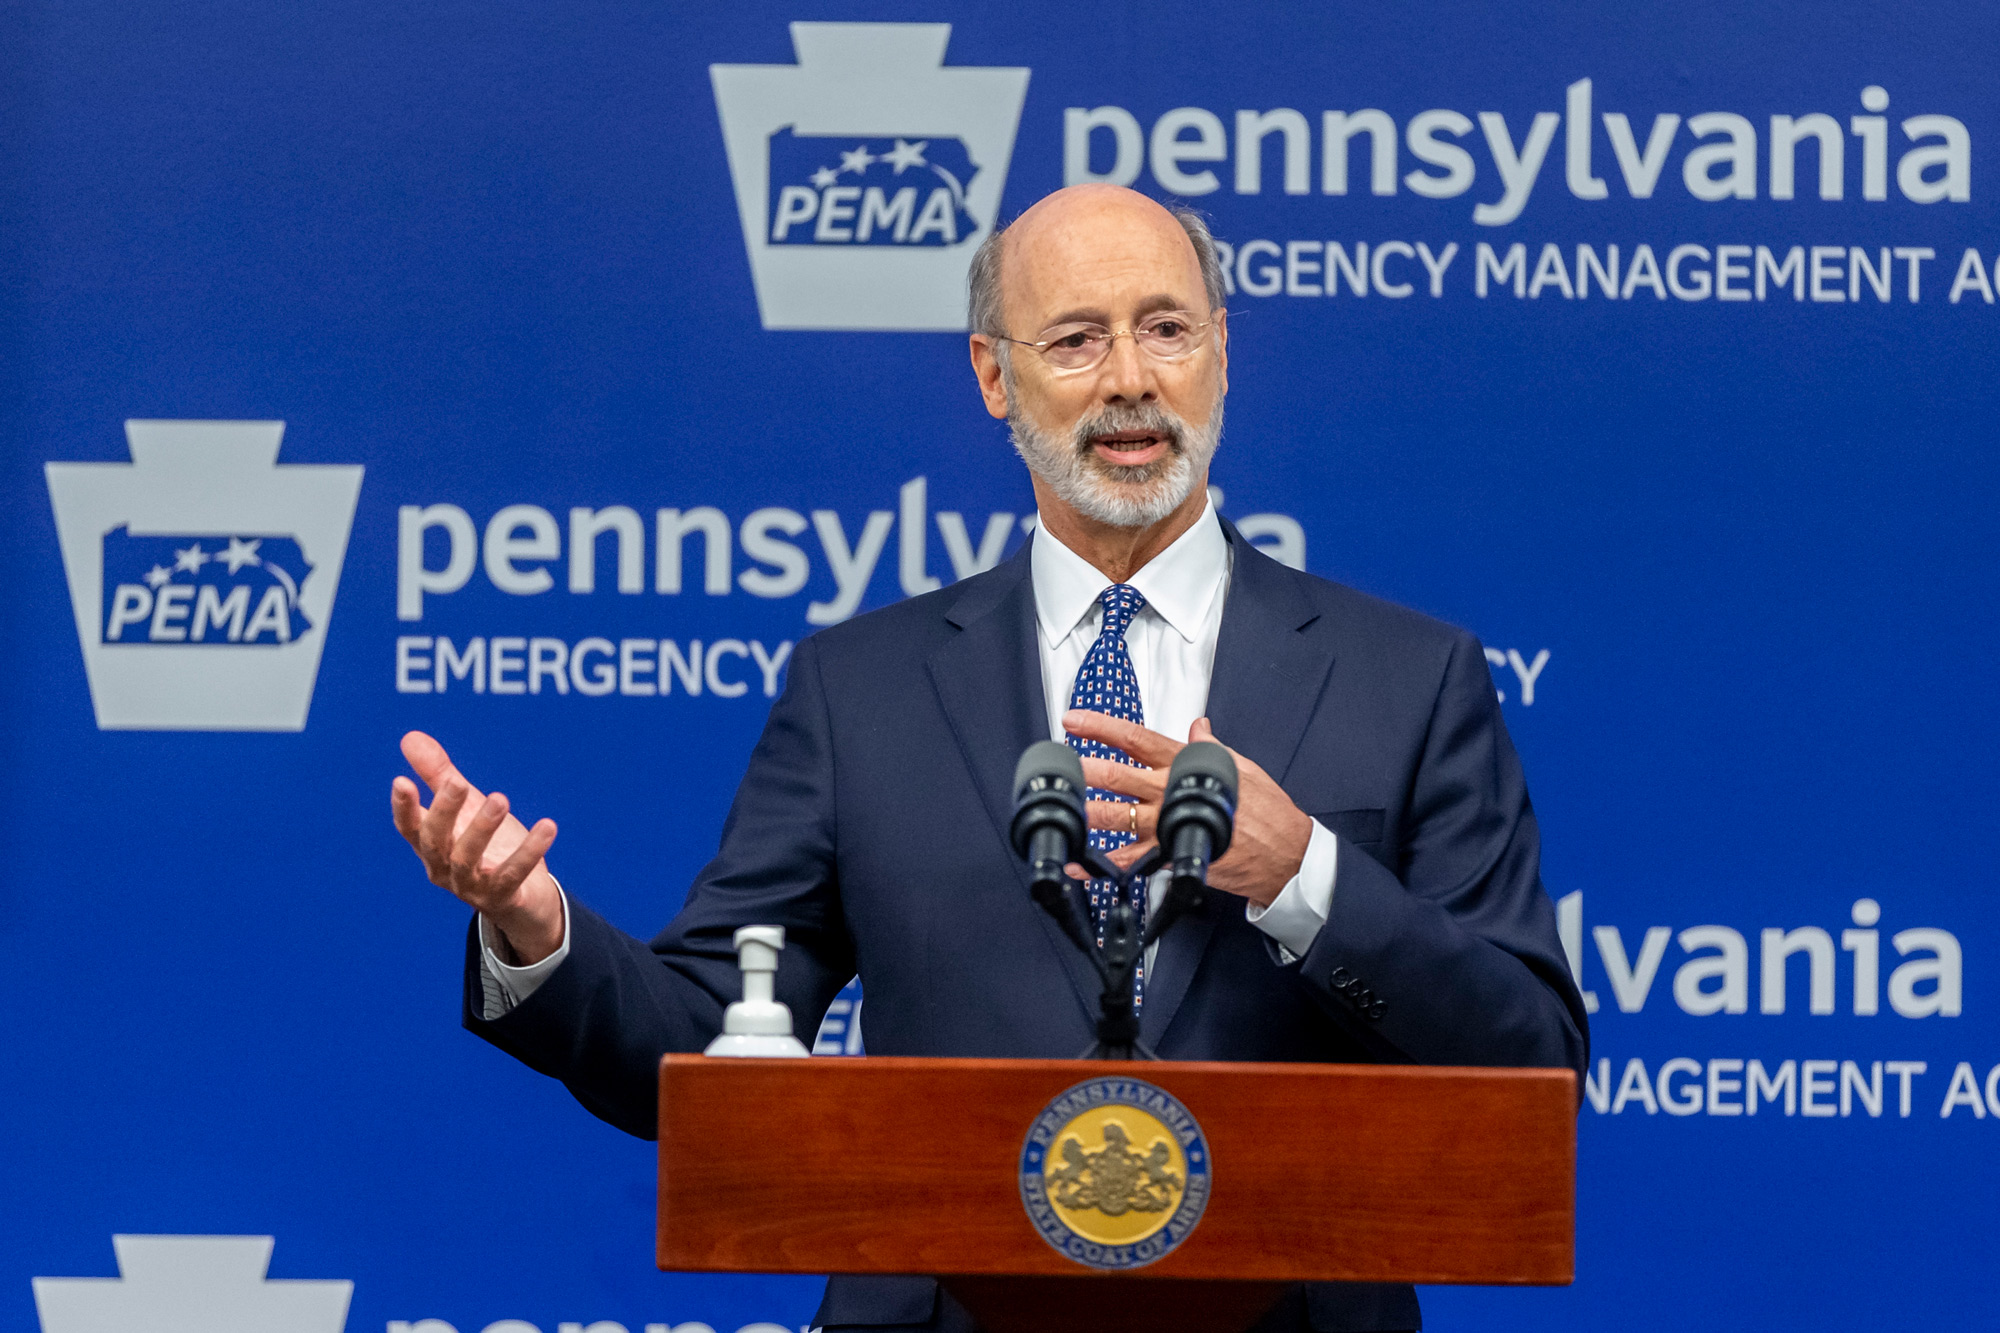 Pennsylvania governor calls for legalizing marijuana as part of Covid-19 economic recovery plan